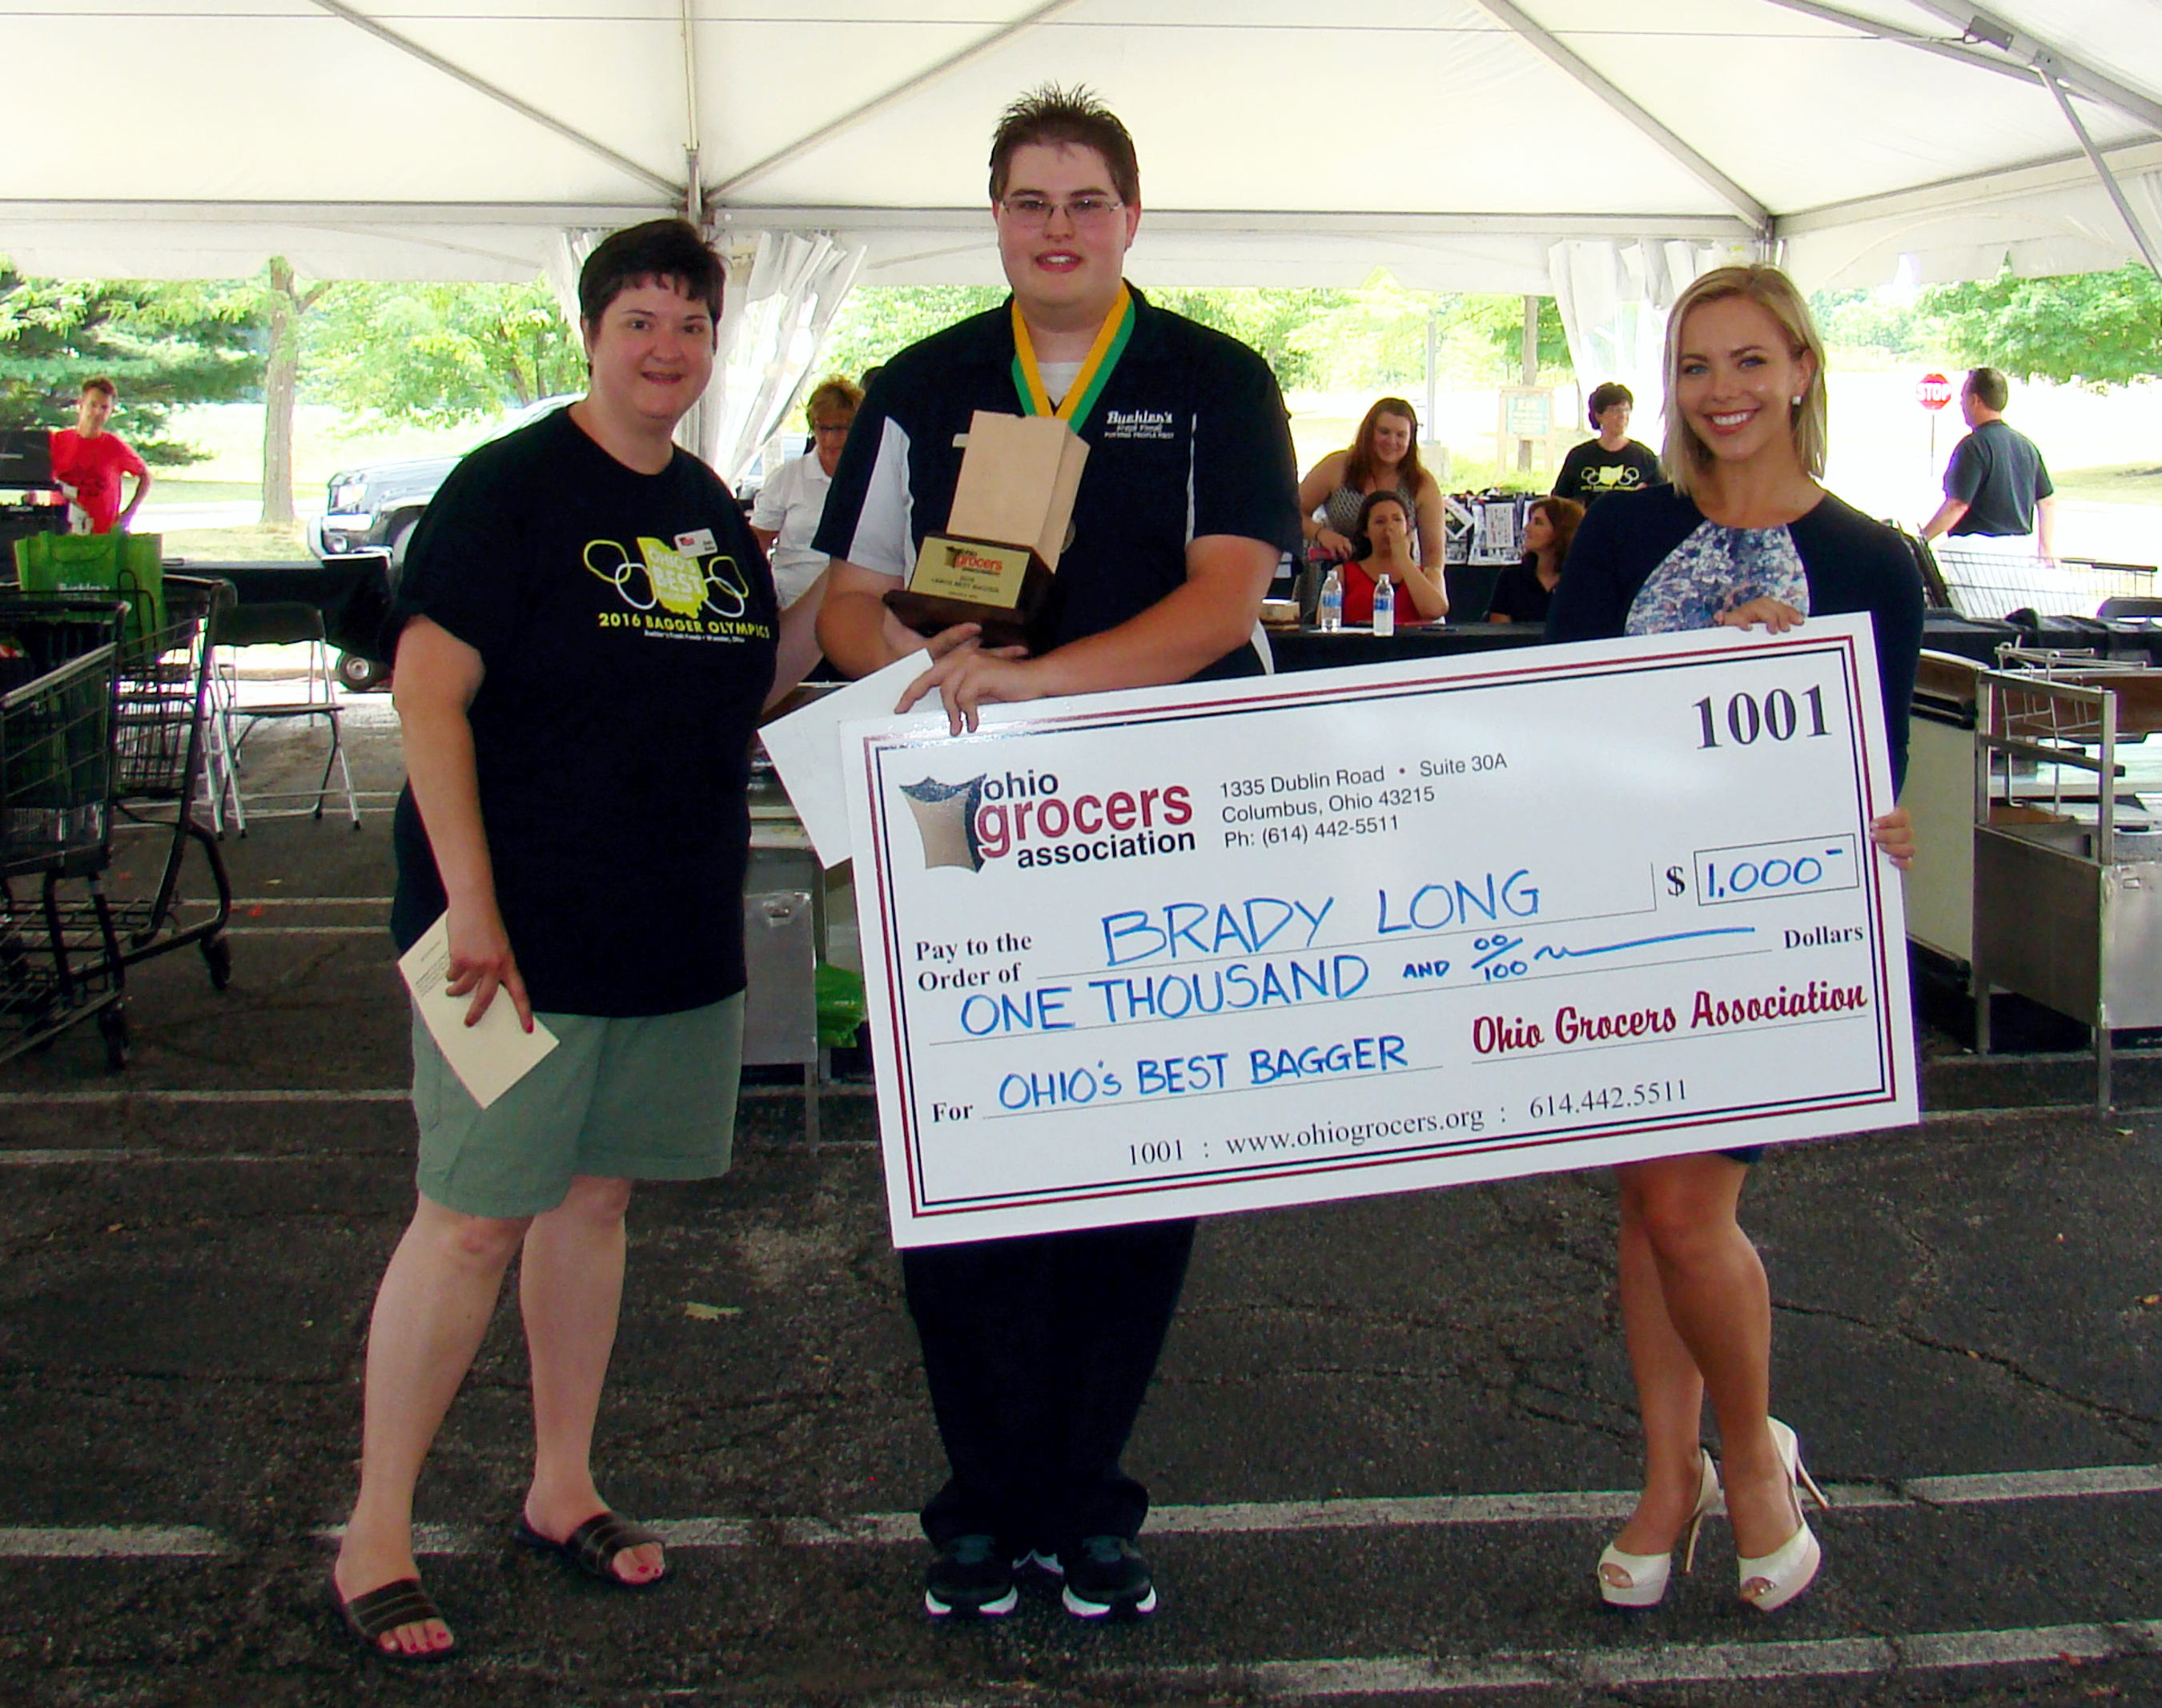 Ohio Grocery Association Bagger Competition winner 2016